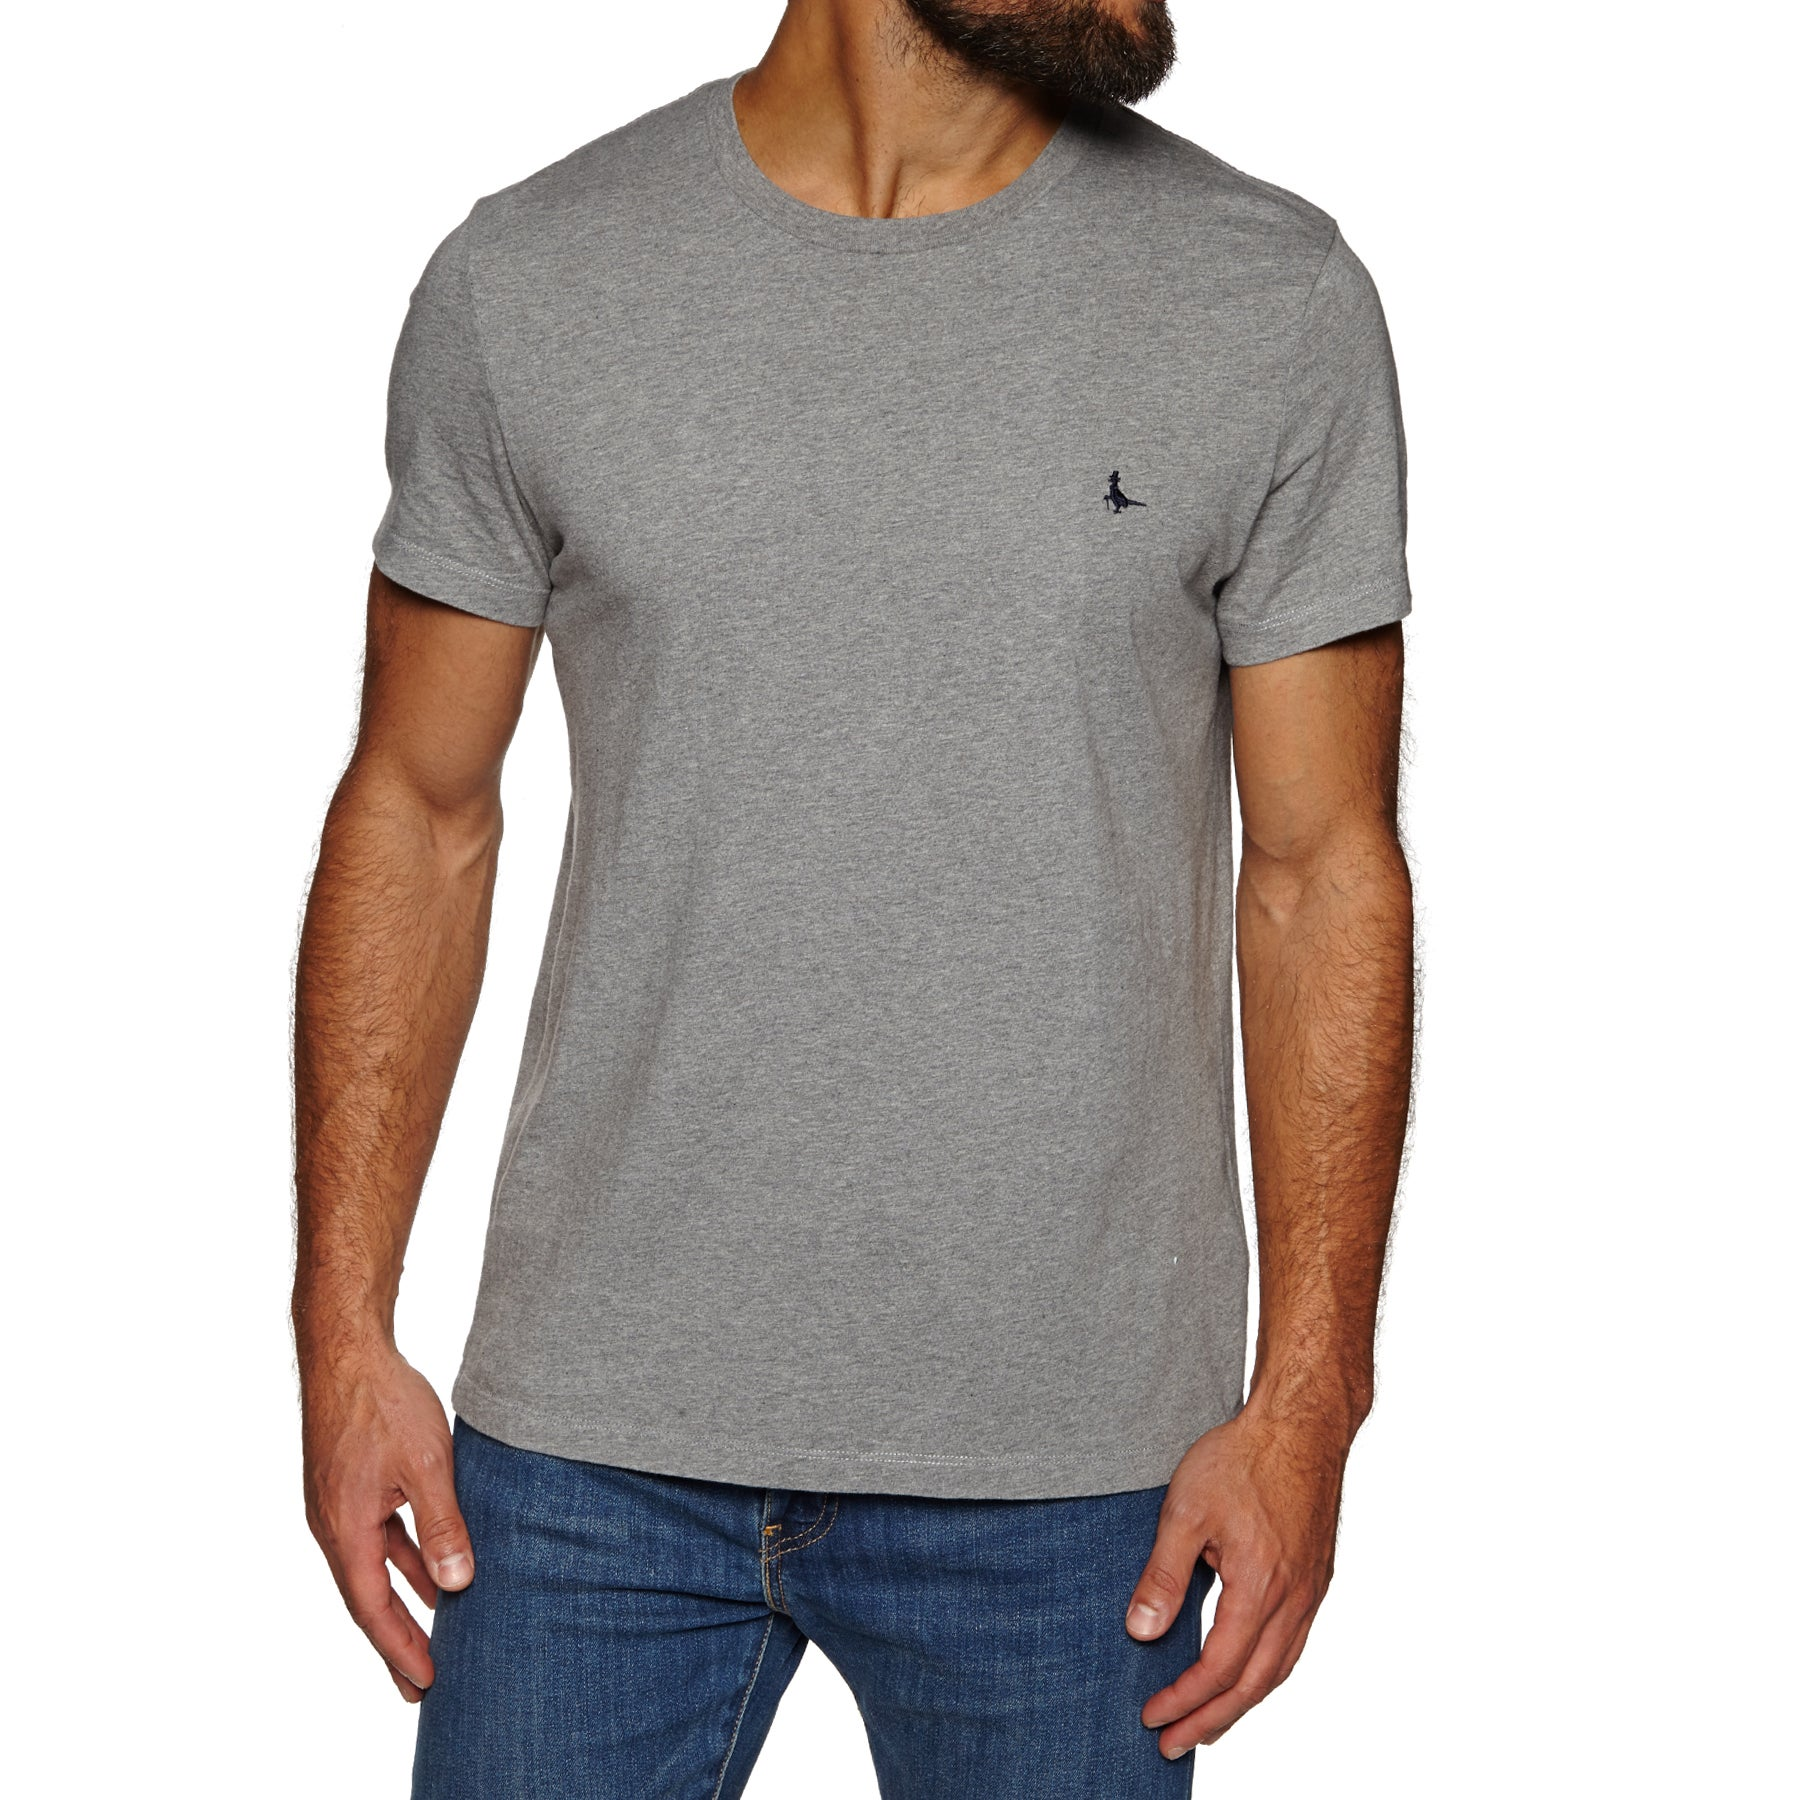 Jack Wills Sandleford Basic Short Sleeve T-Shirt - Grey Marl